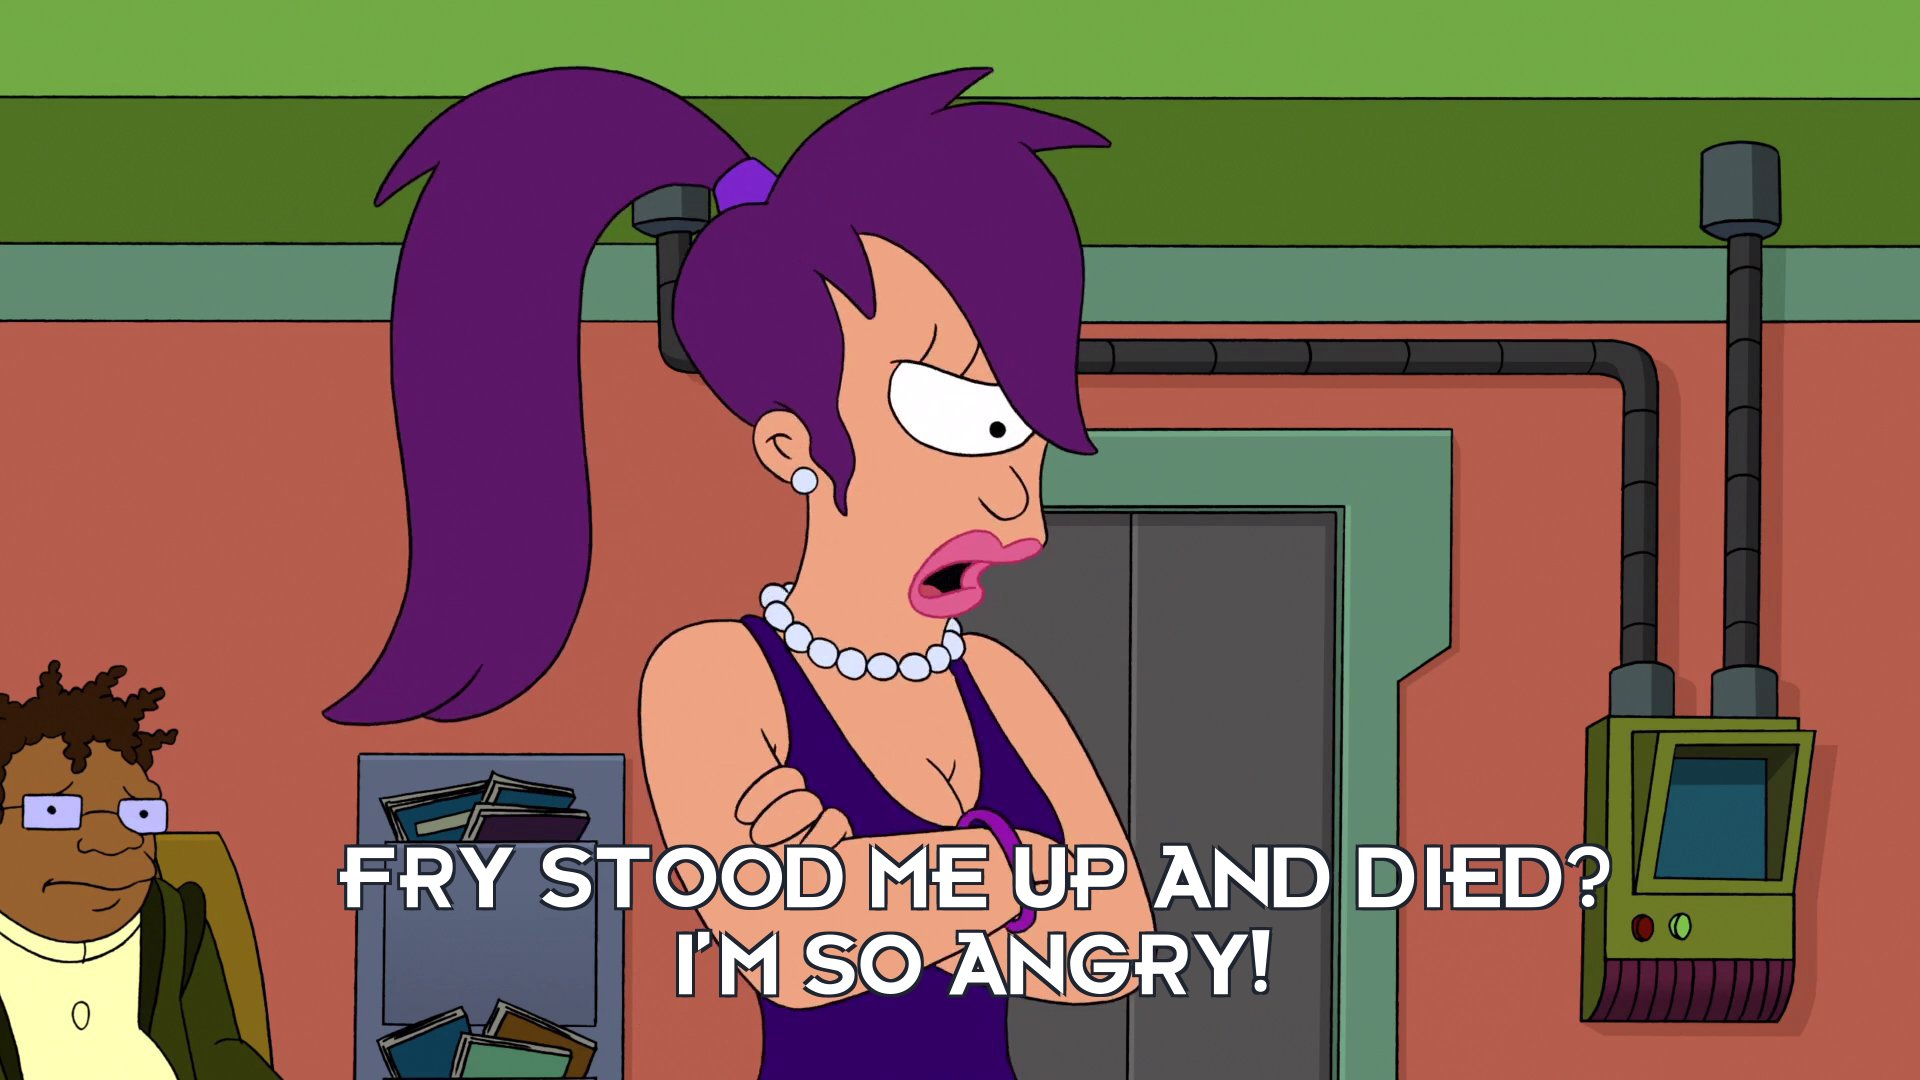 Turanga Leela: Fry stood me up and died? I'm so angry!